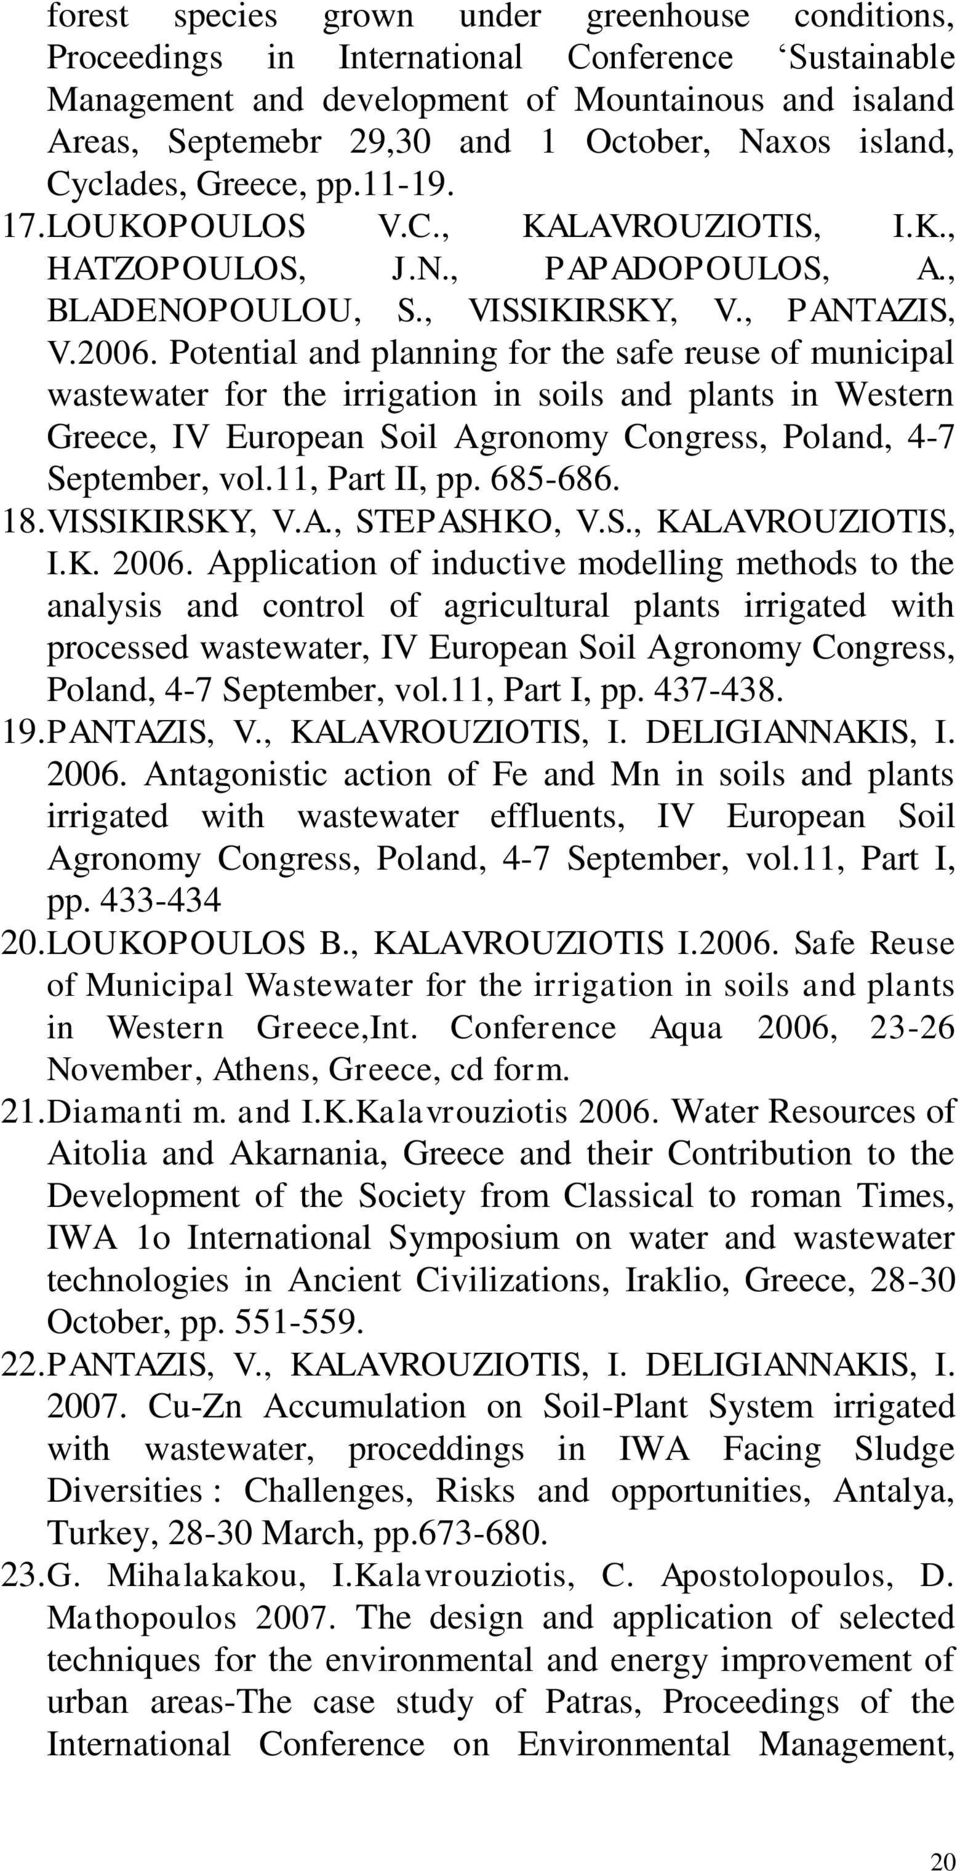 Potential and planning for the safe reuse of municipal wastewater for the irrigation in soils and plants in Western Greece, IV European Soil Agronomy Congress, Poland, 4-7 September, vol.